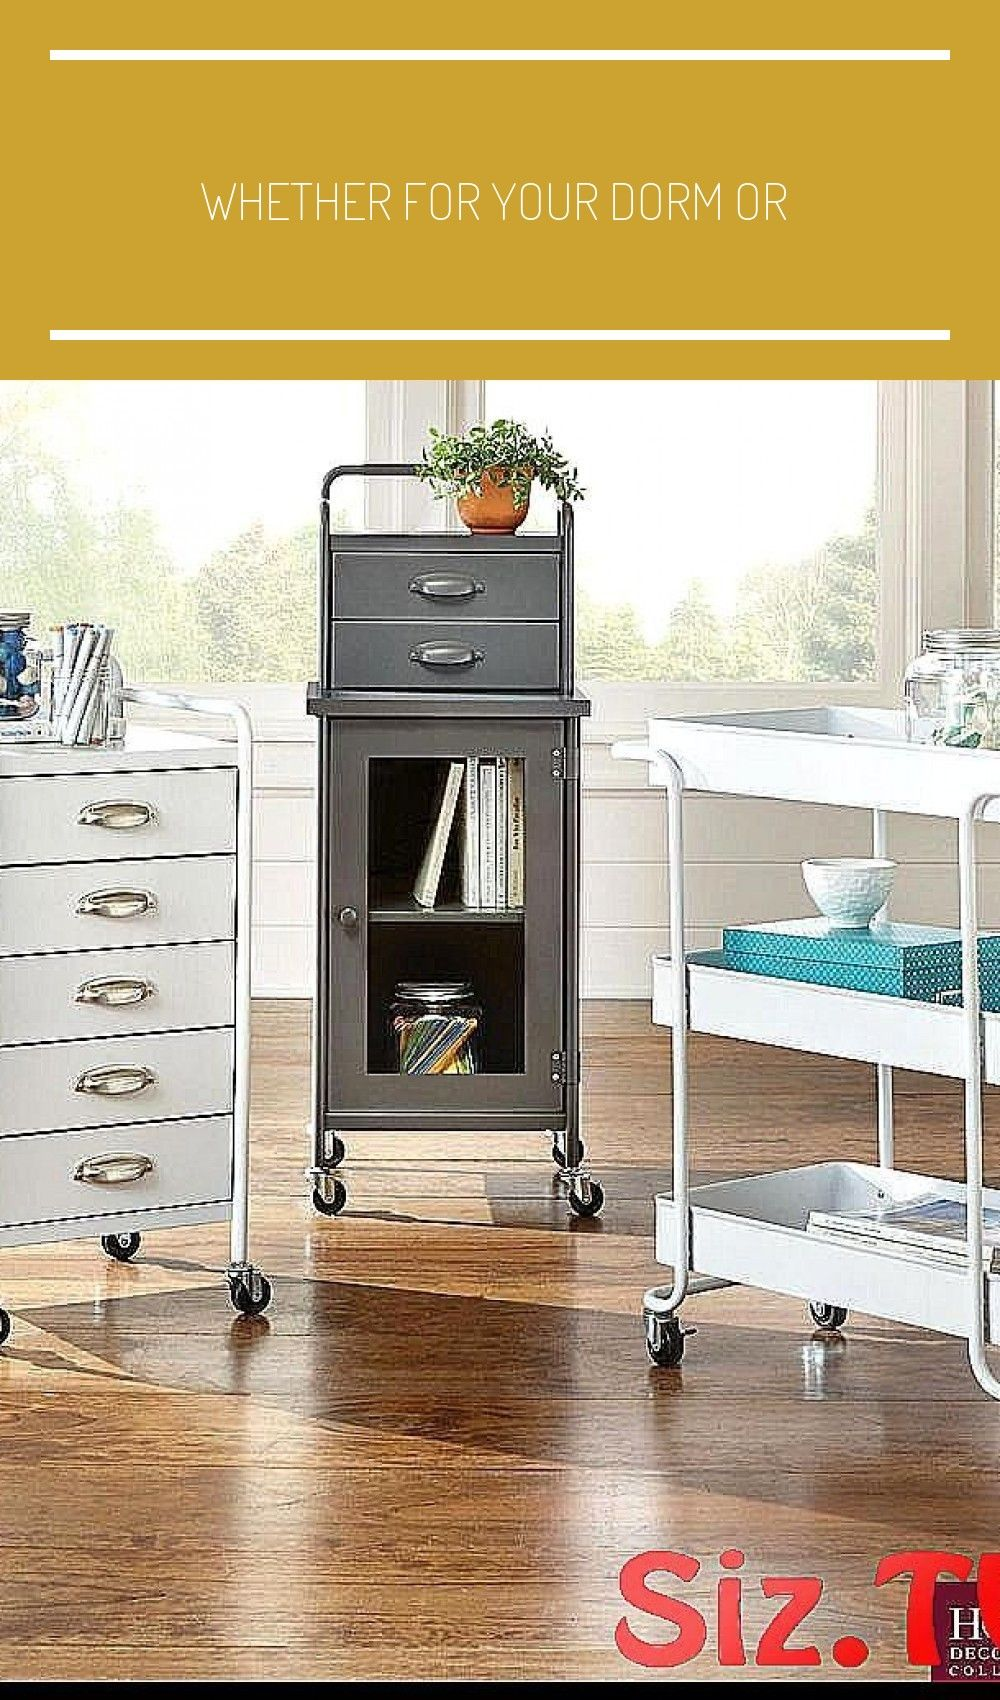 Whether for your dorm or apartment a mobile cart l room organization cart room organization list